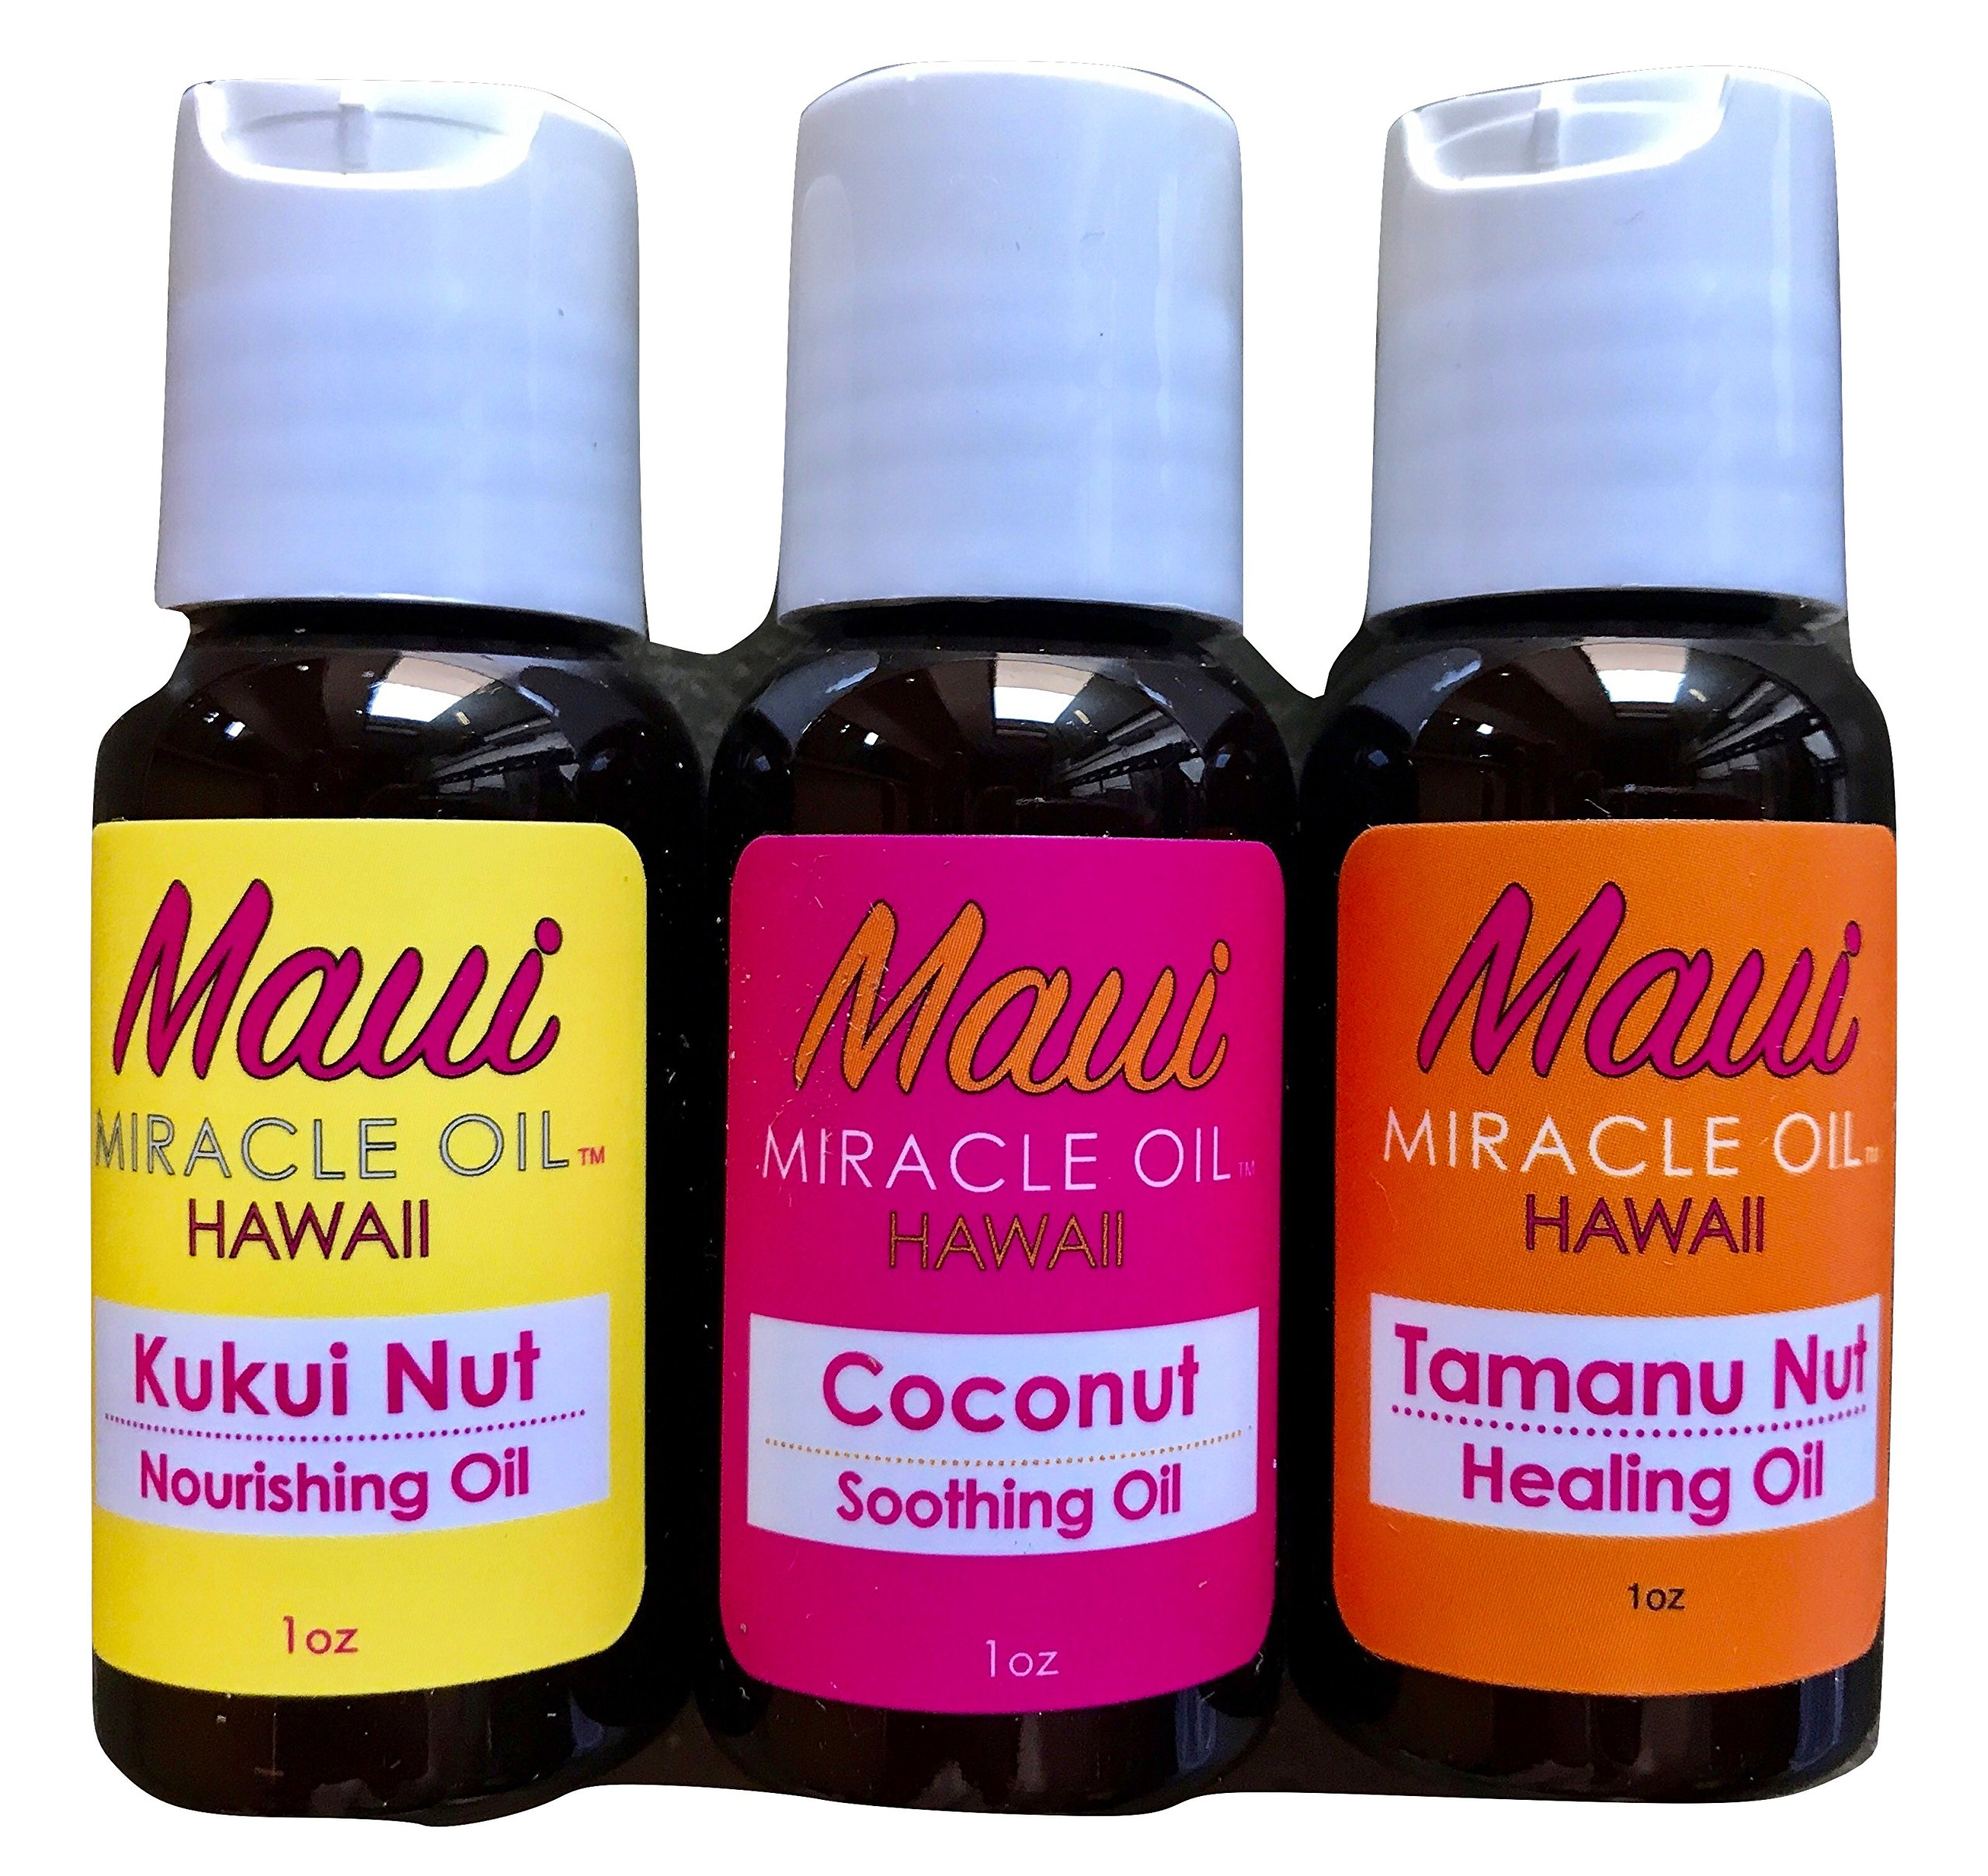 Maui Miracle Oil Hawaii Yonka Age Correction Stimulastine Jour Restructuring Wrinkle Remover 50ml/1.67oz